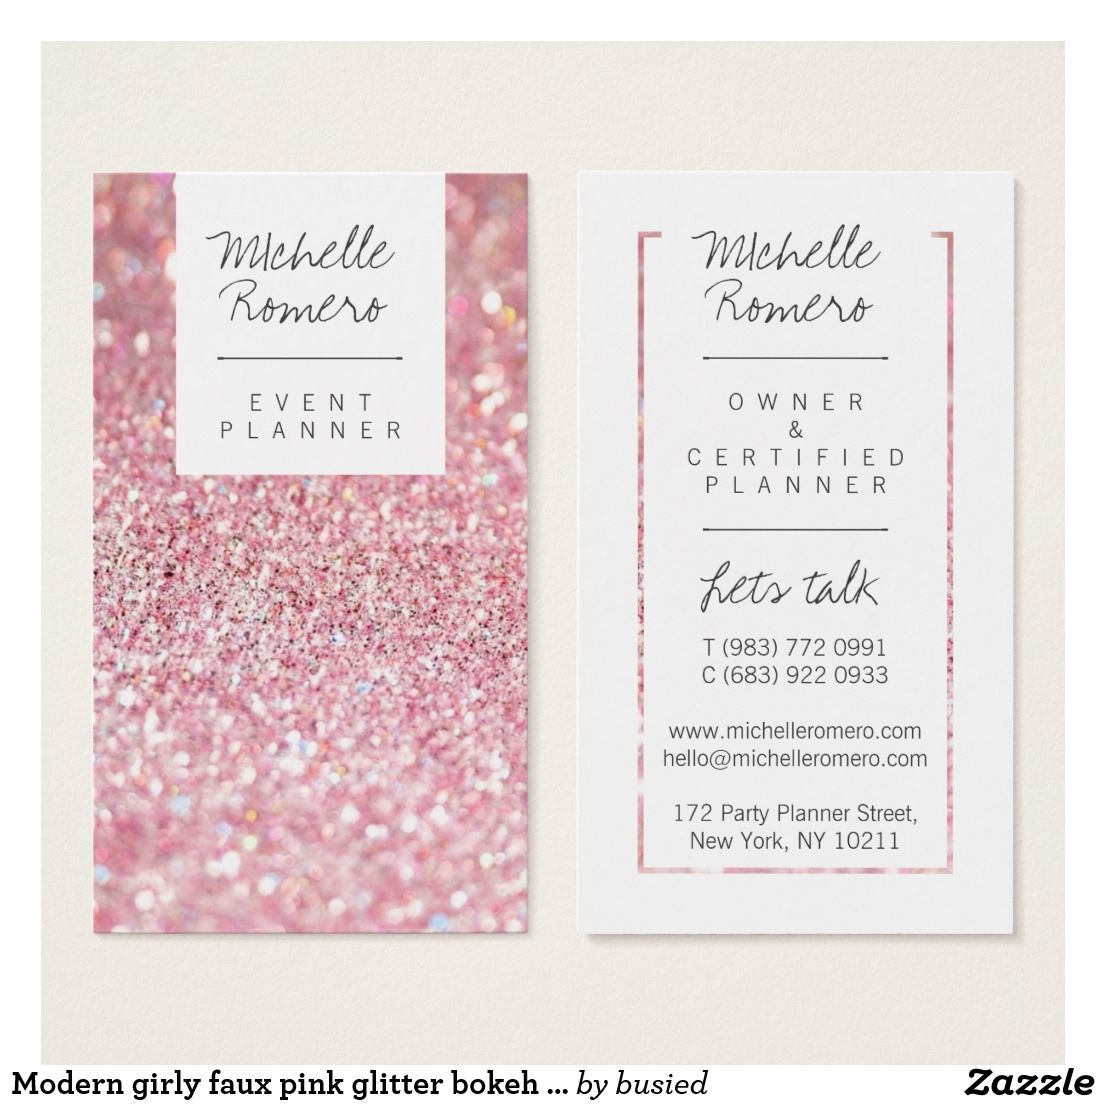 Modern Girly Faux Pink Glitter Bokeh Event Planner Business Card Zazzle Com Event Planner Business Card Party Planner Business Cards Party Planning Business